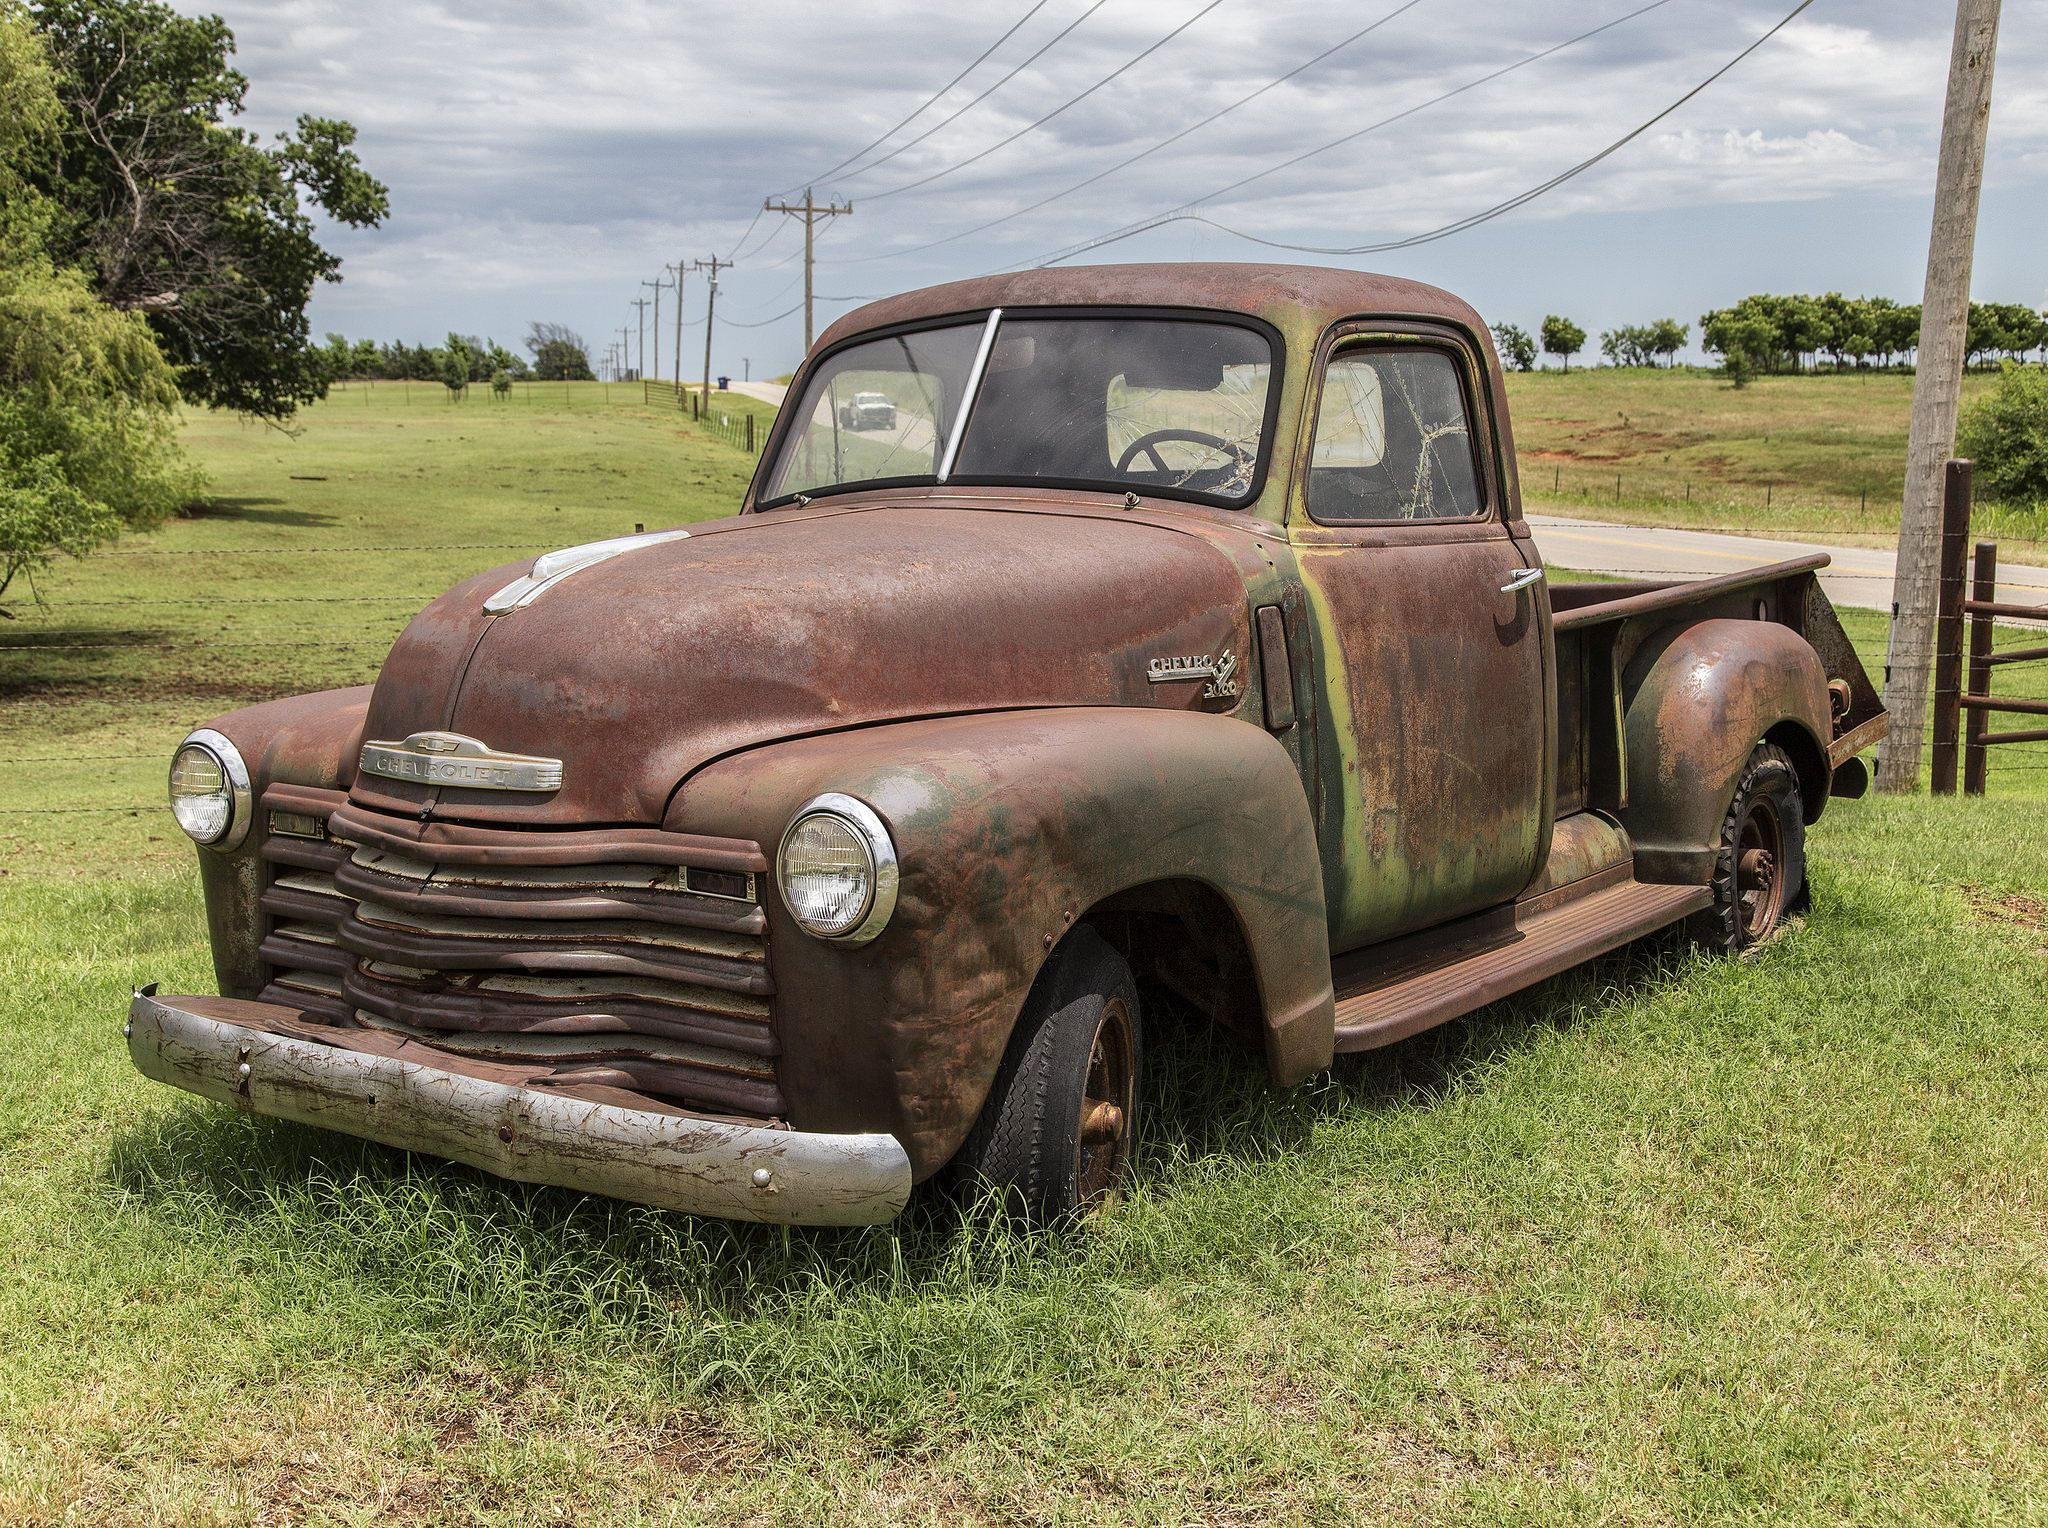 Rusted Chevy Pickup | Chevy pickups, Classic chevy trucks and Rusty cars